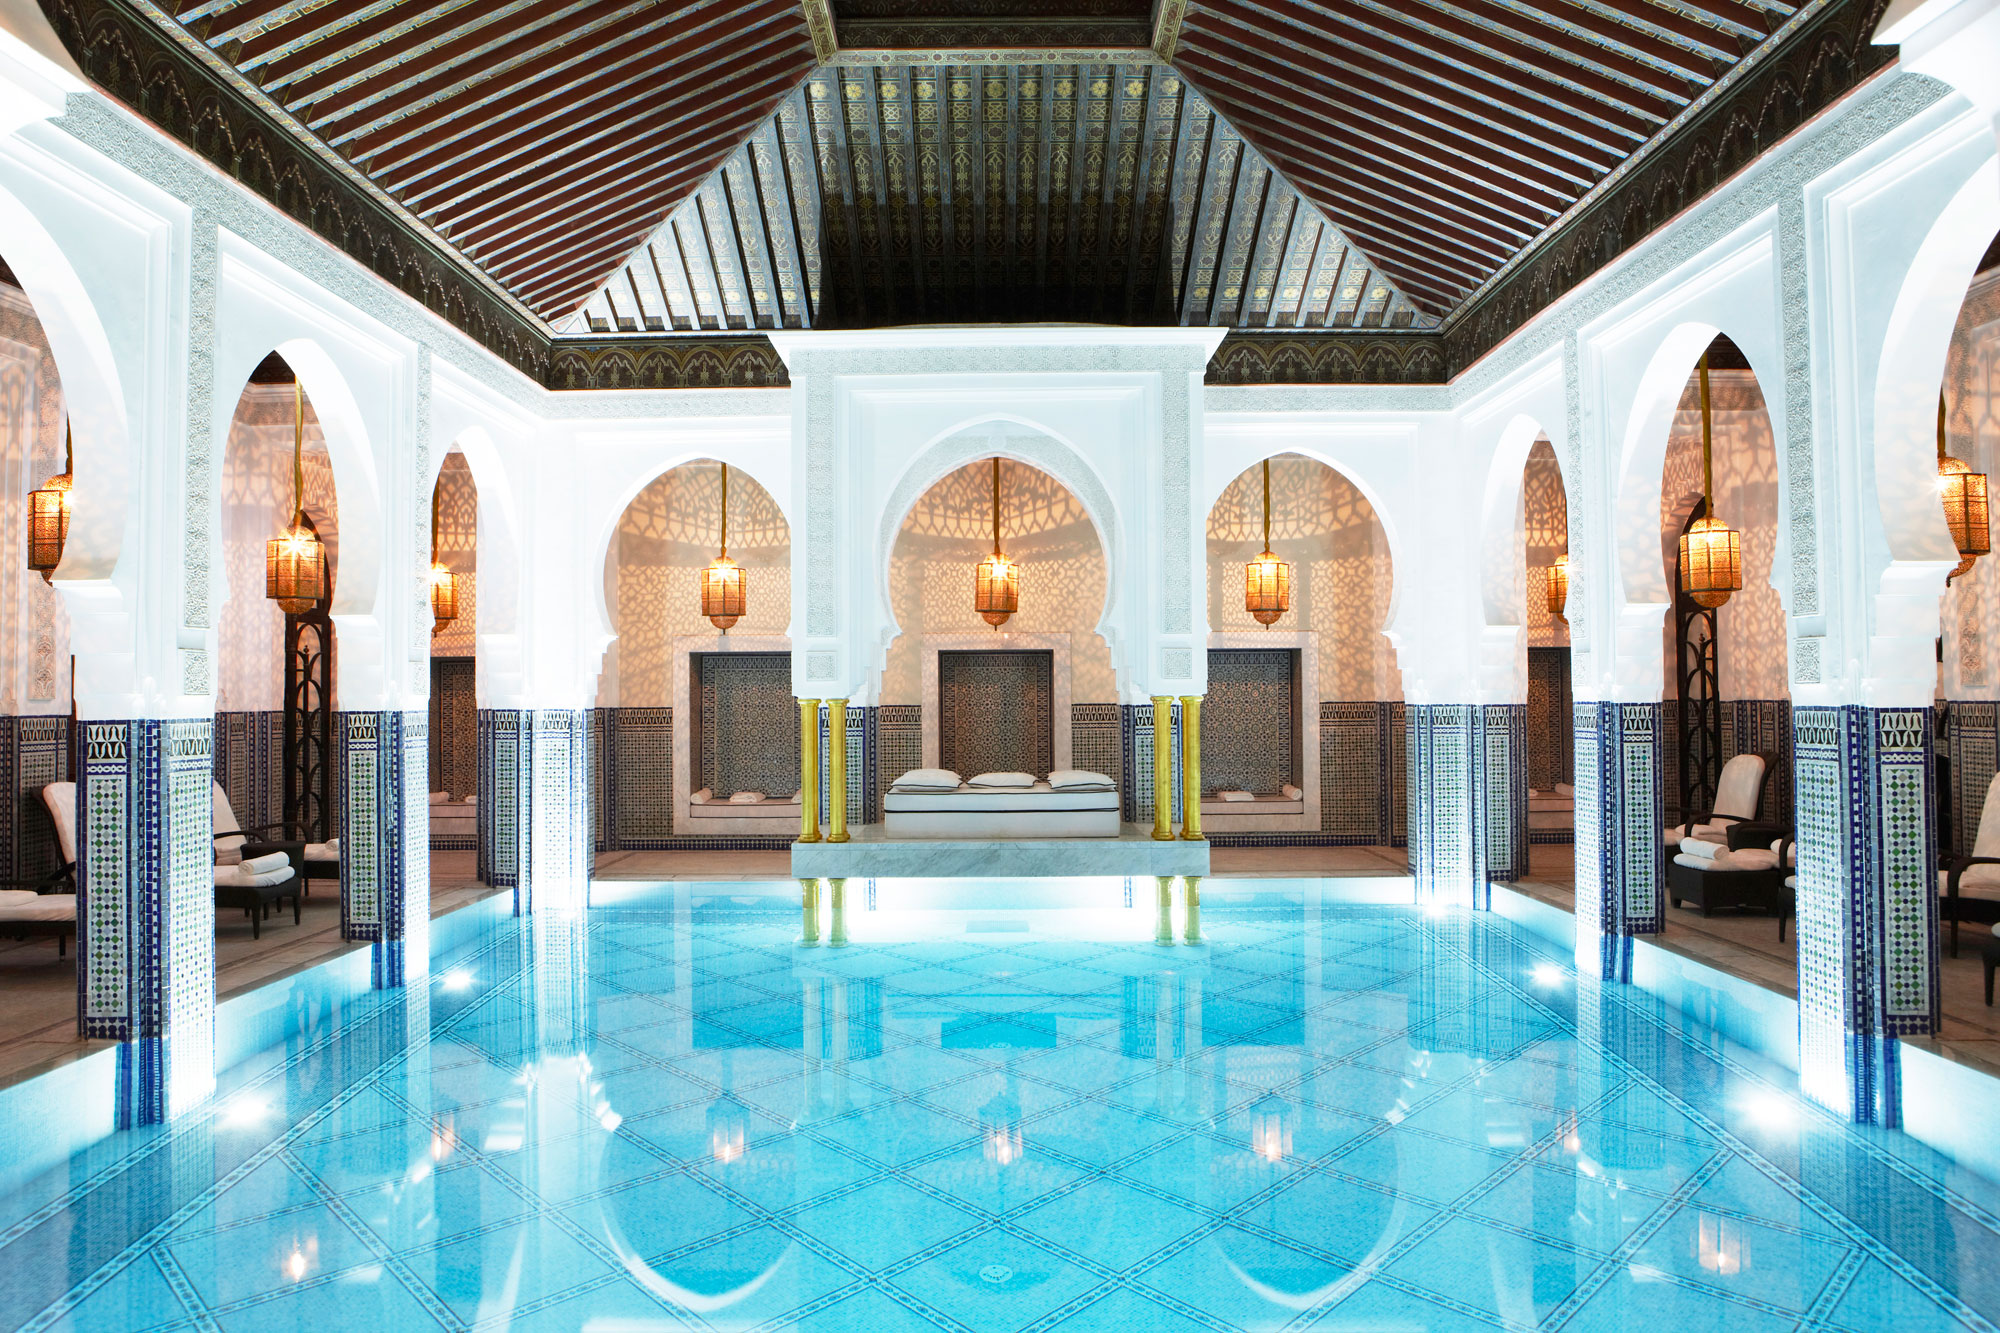 Five Simply Unmissable Spa Hotels To Relax And Unwind